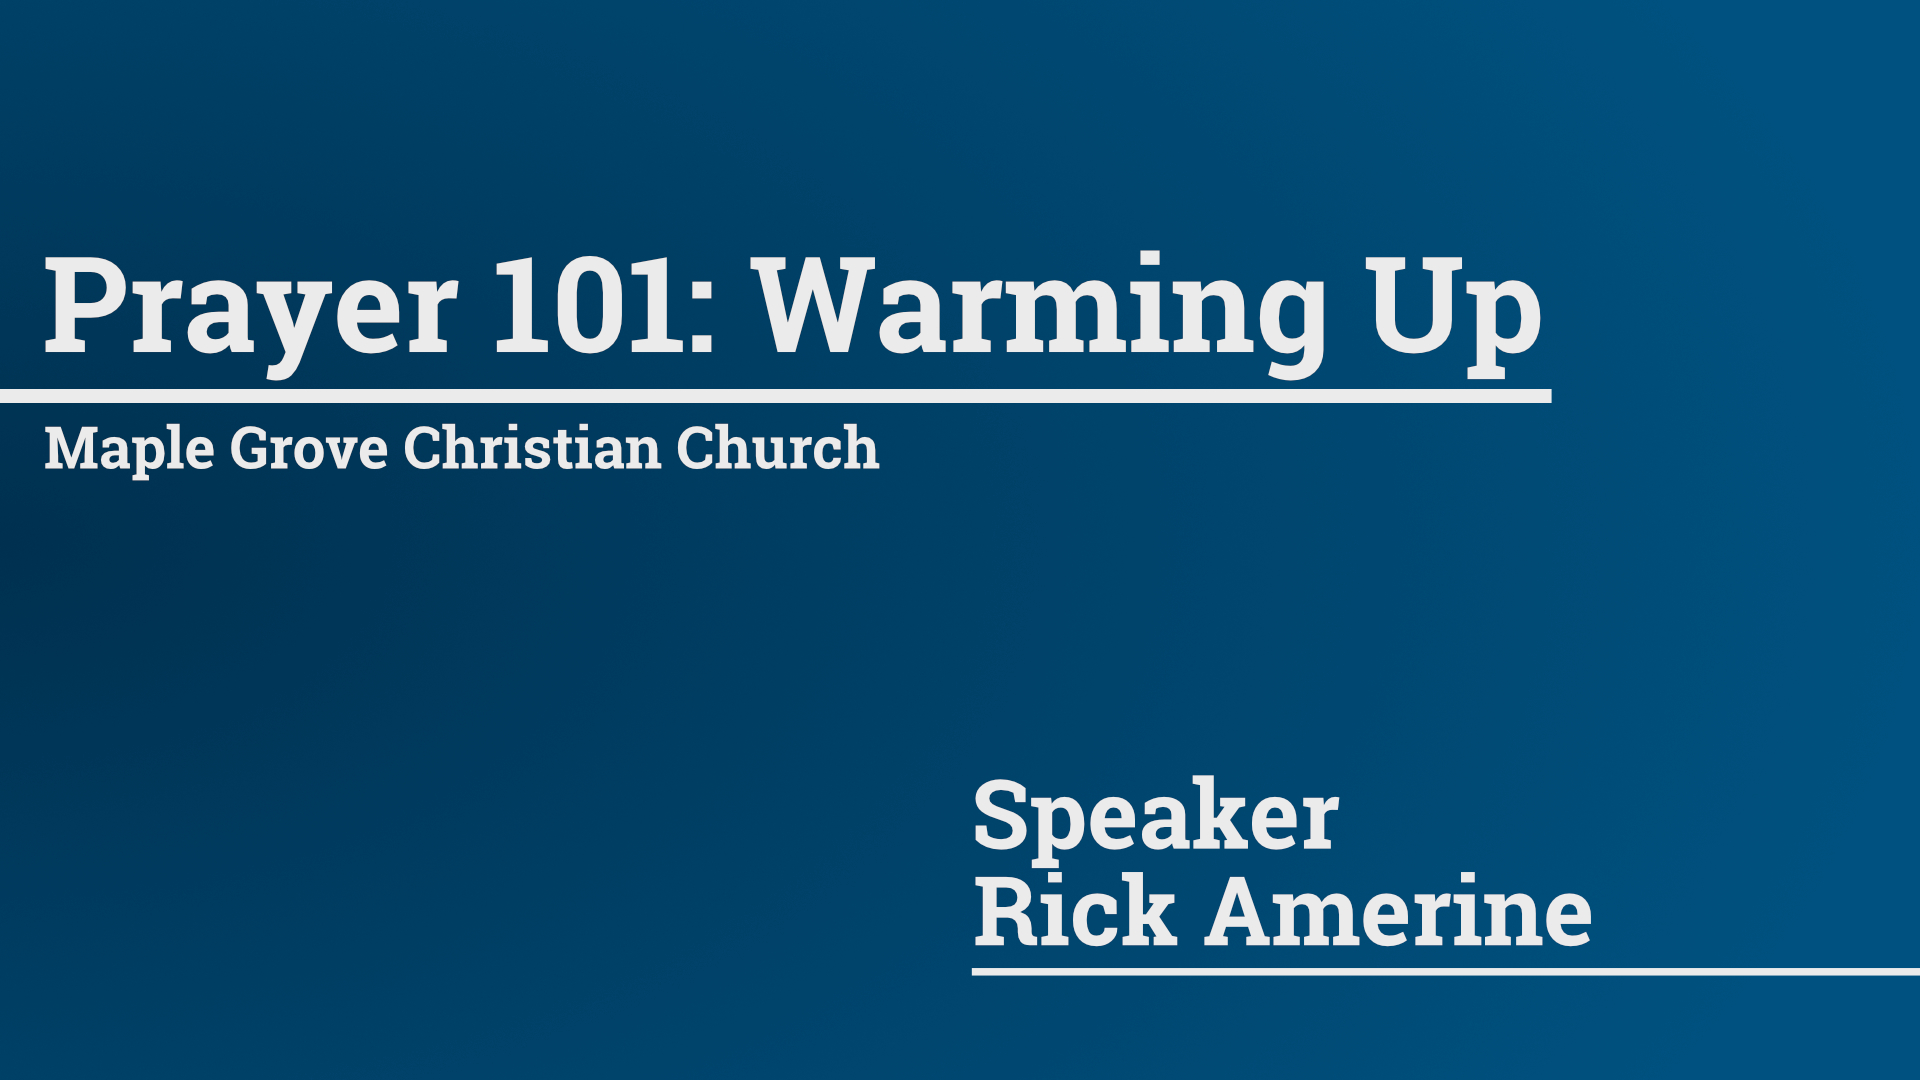 Prayer 101: Warming Up • Dec. 27, 2015